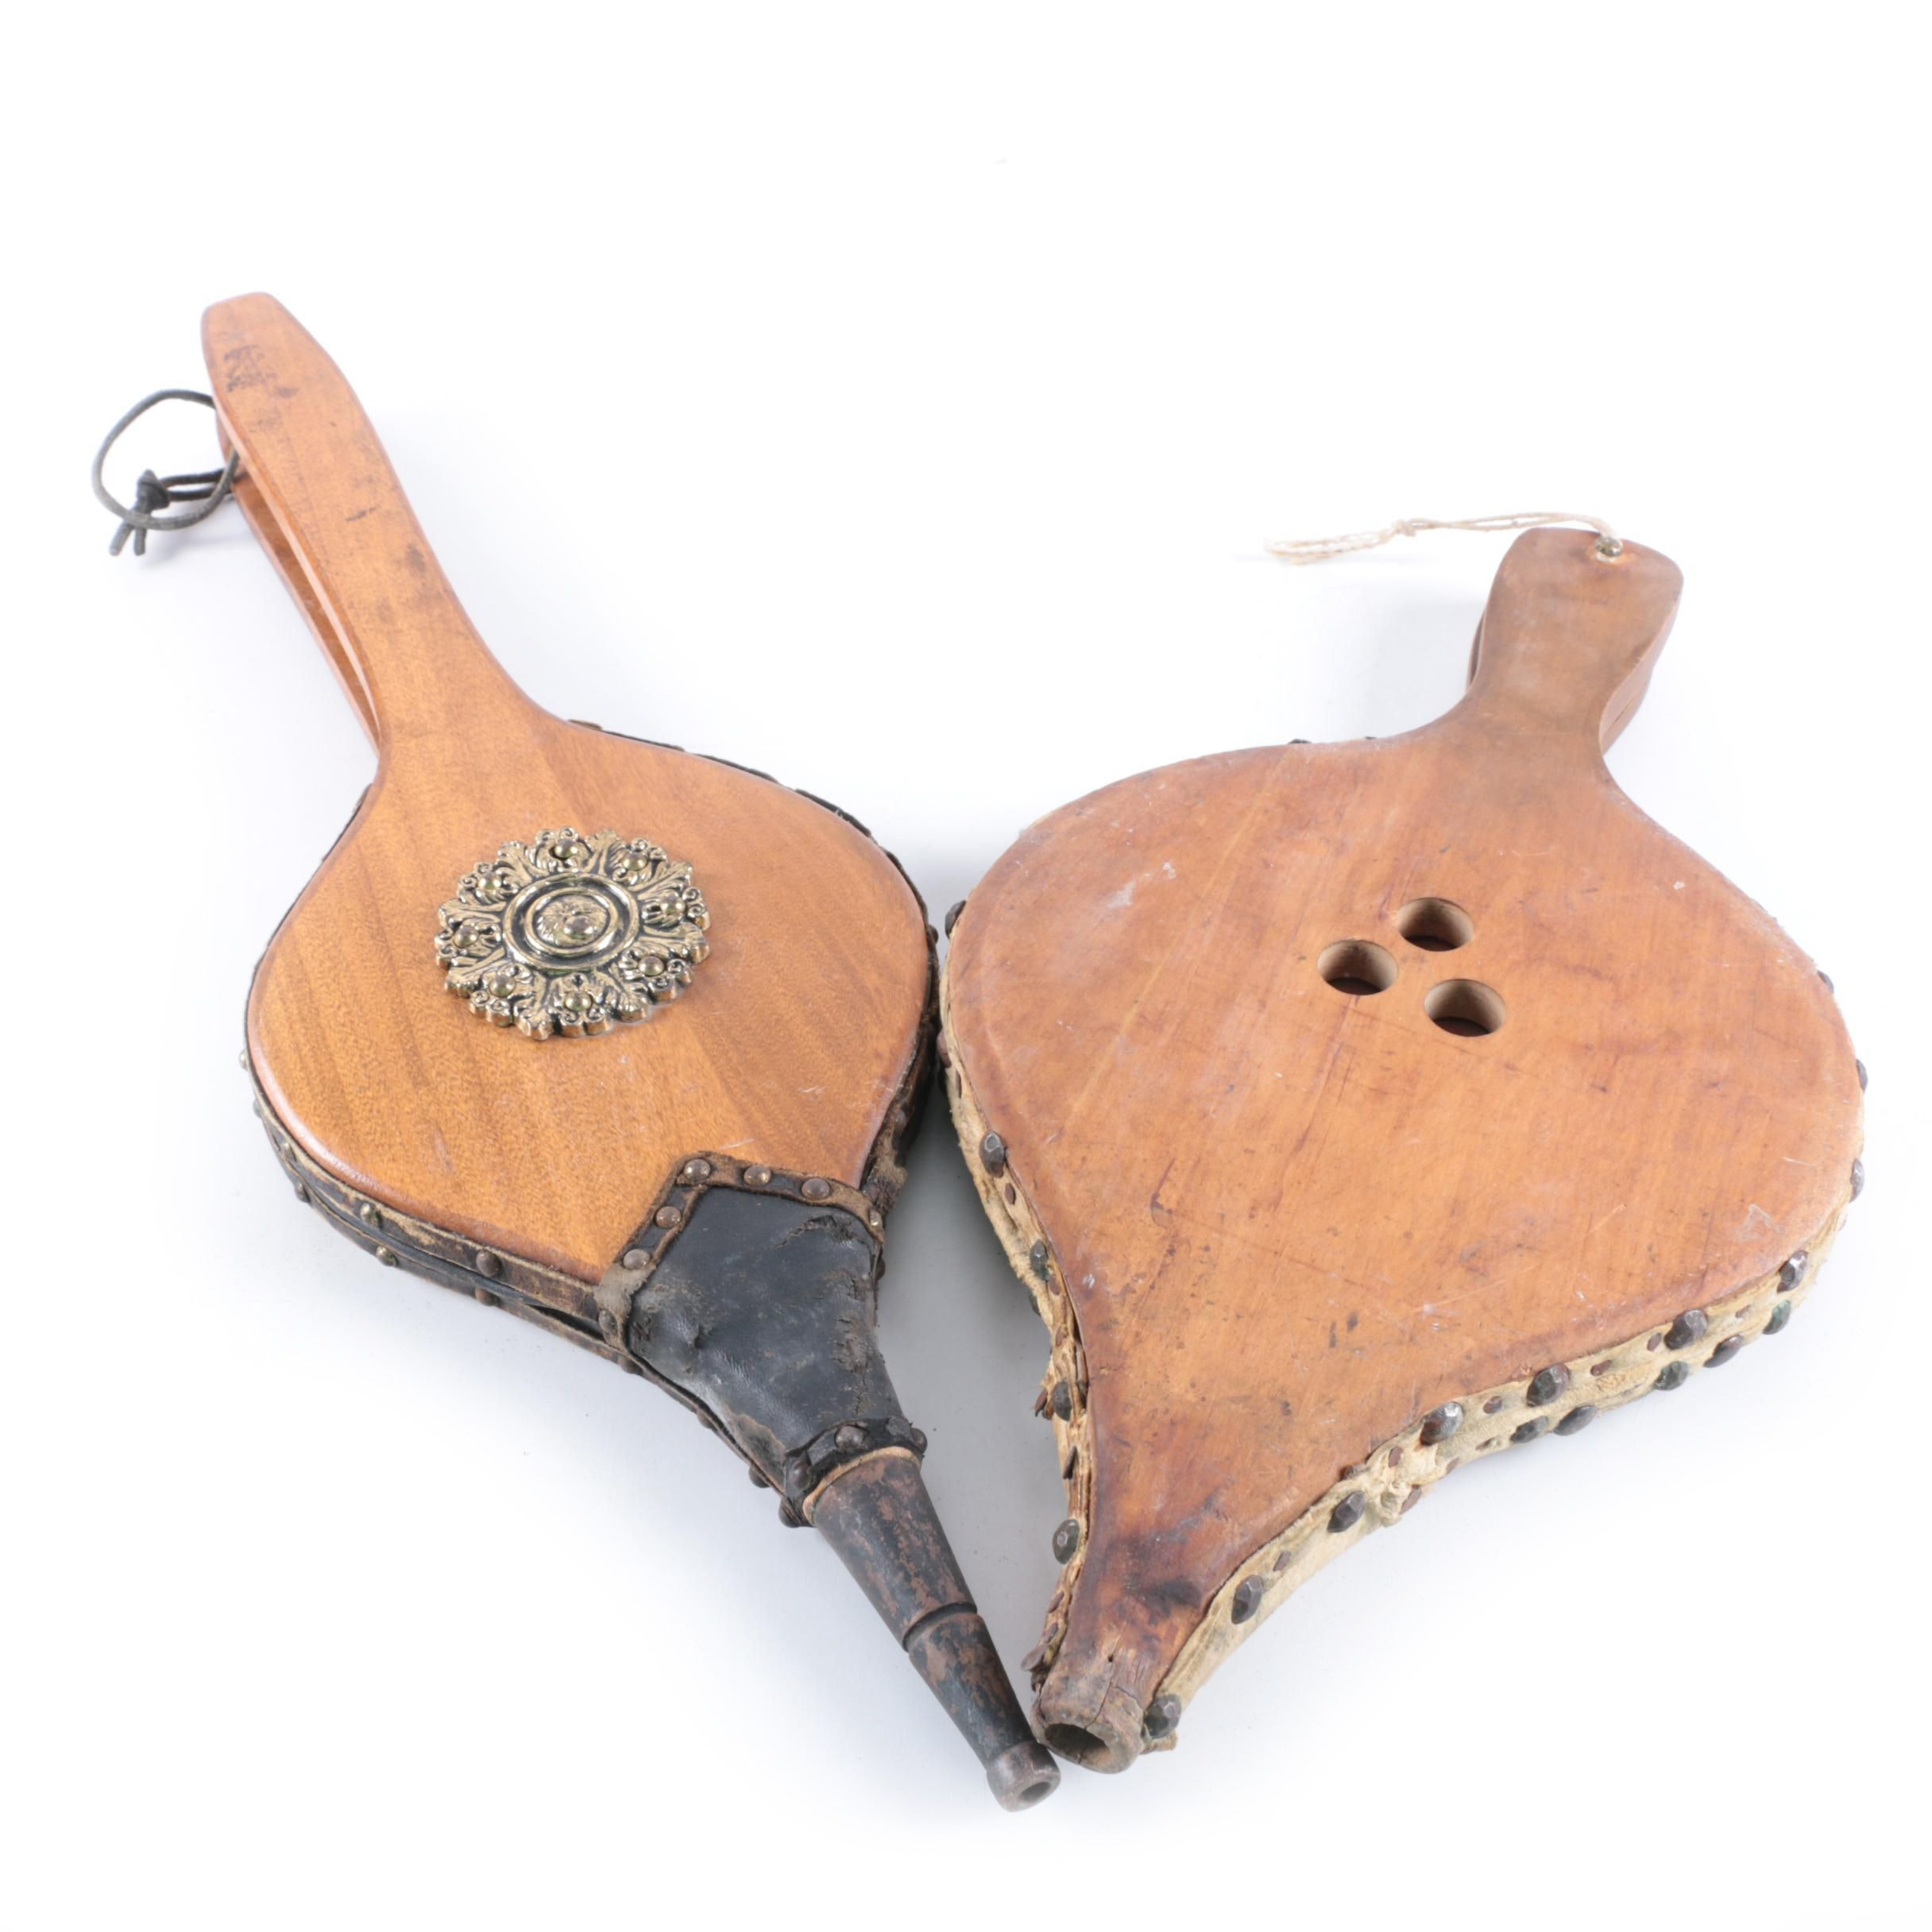 Vintage Wood and Metal Fireplace Bellows